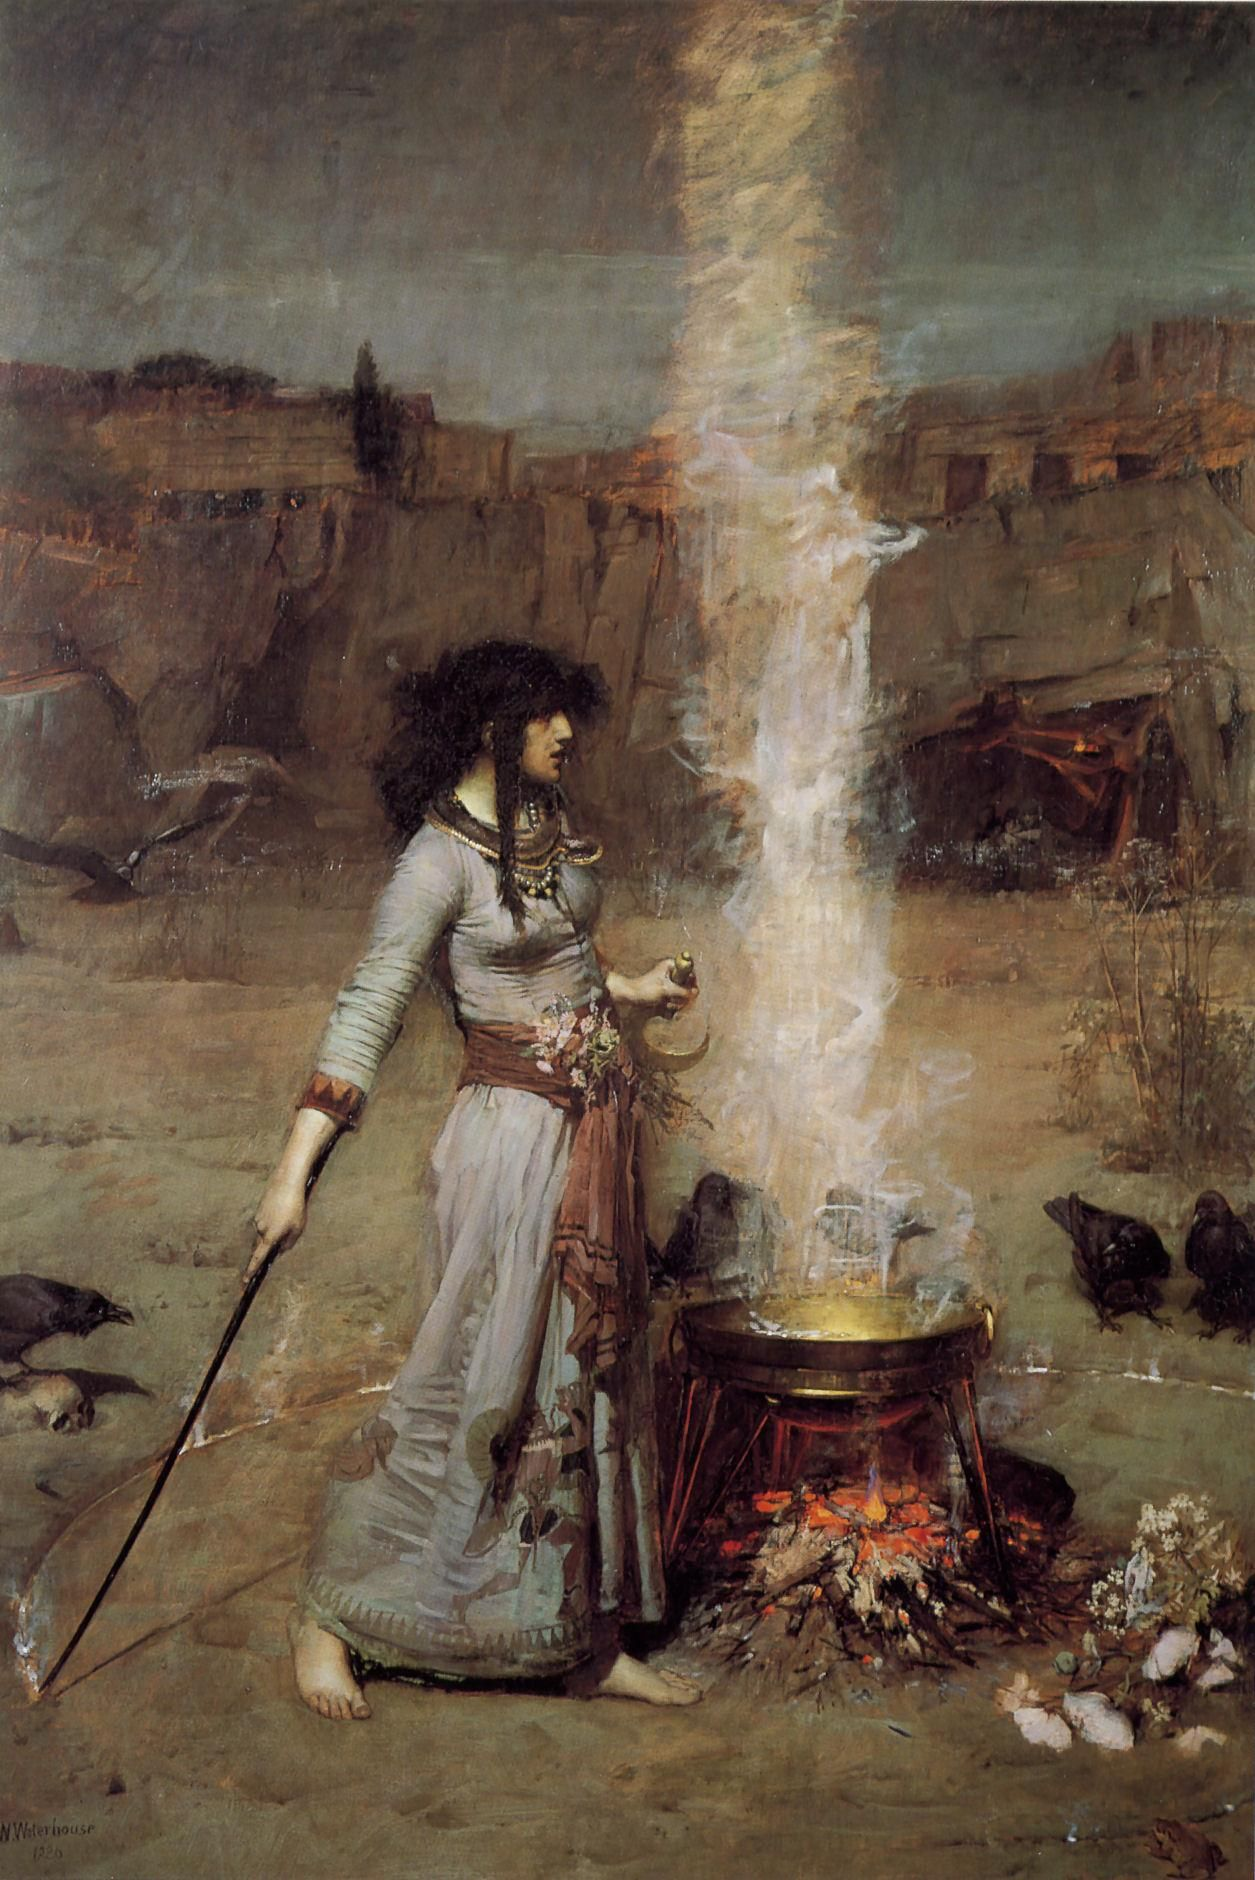 Malifecium and Witchcraft: How Being a Witch and Magic Was Viewed in Early Modern Europe #magiccircle